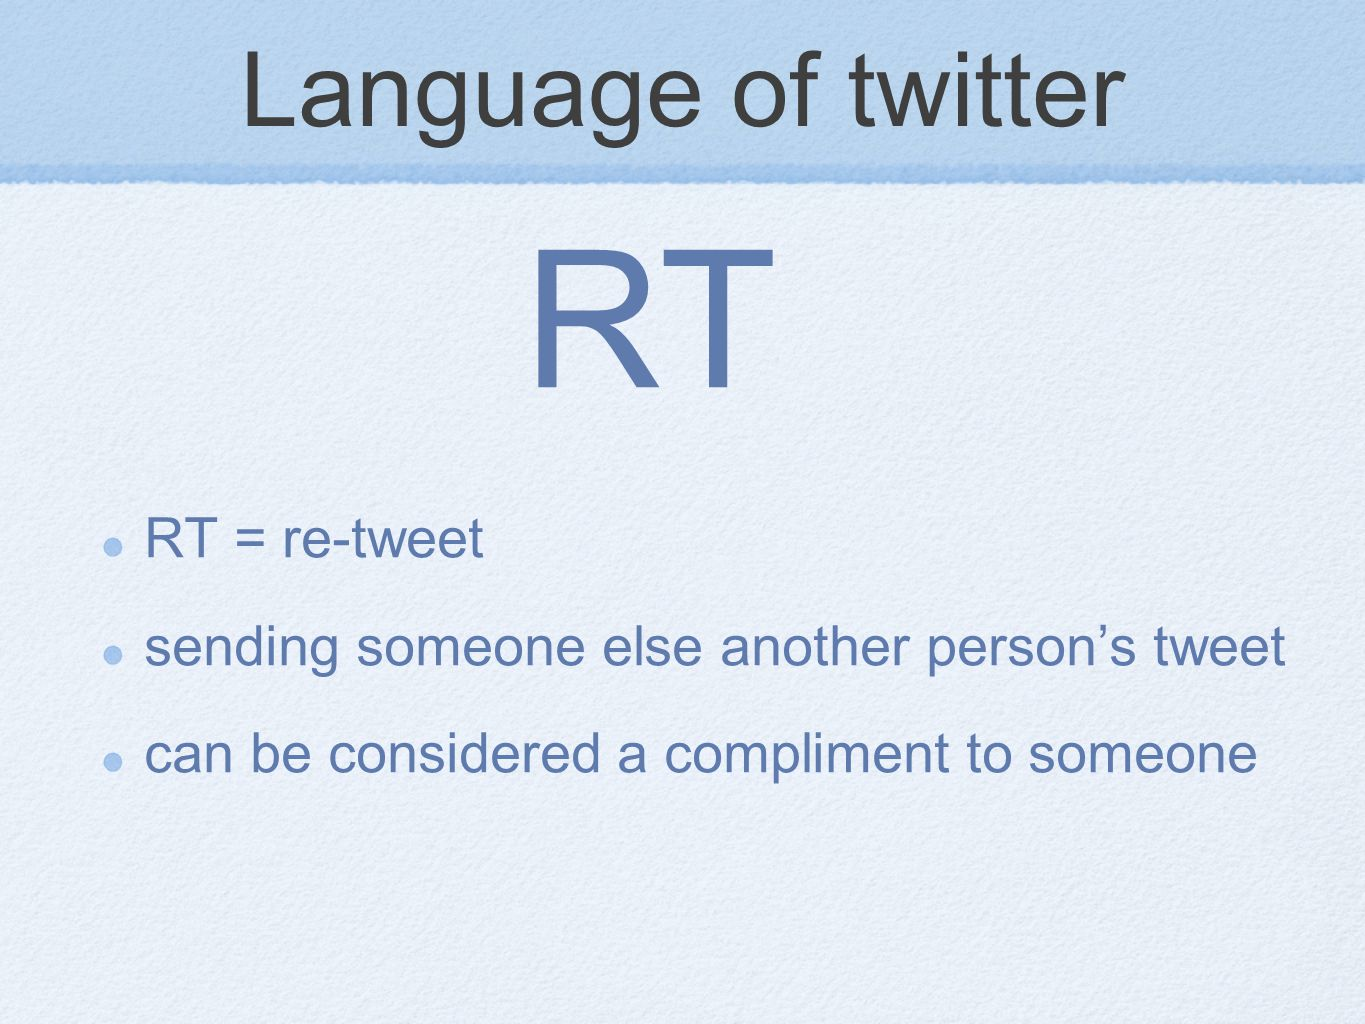 Language of twitter RT = re-tweet sending someone else another person's tweet can be considered a compliment to someone RT